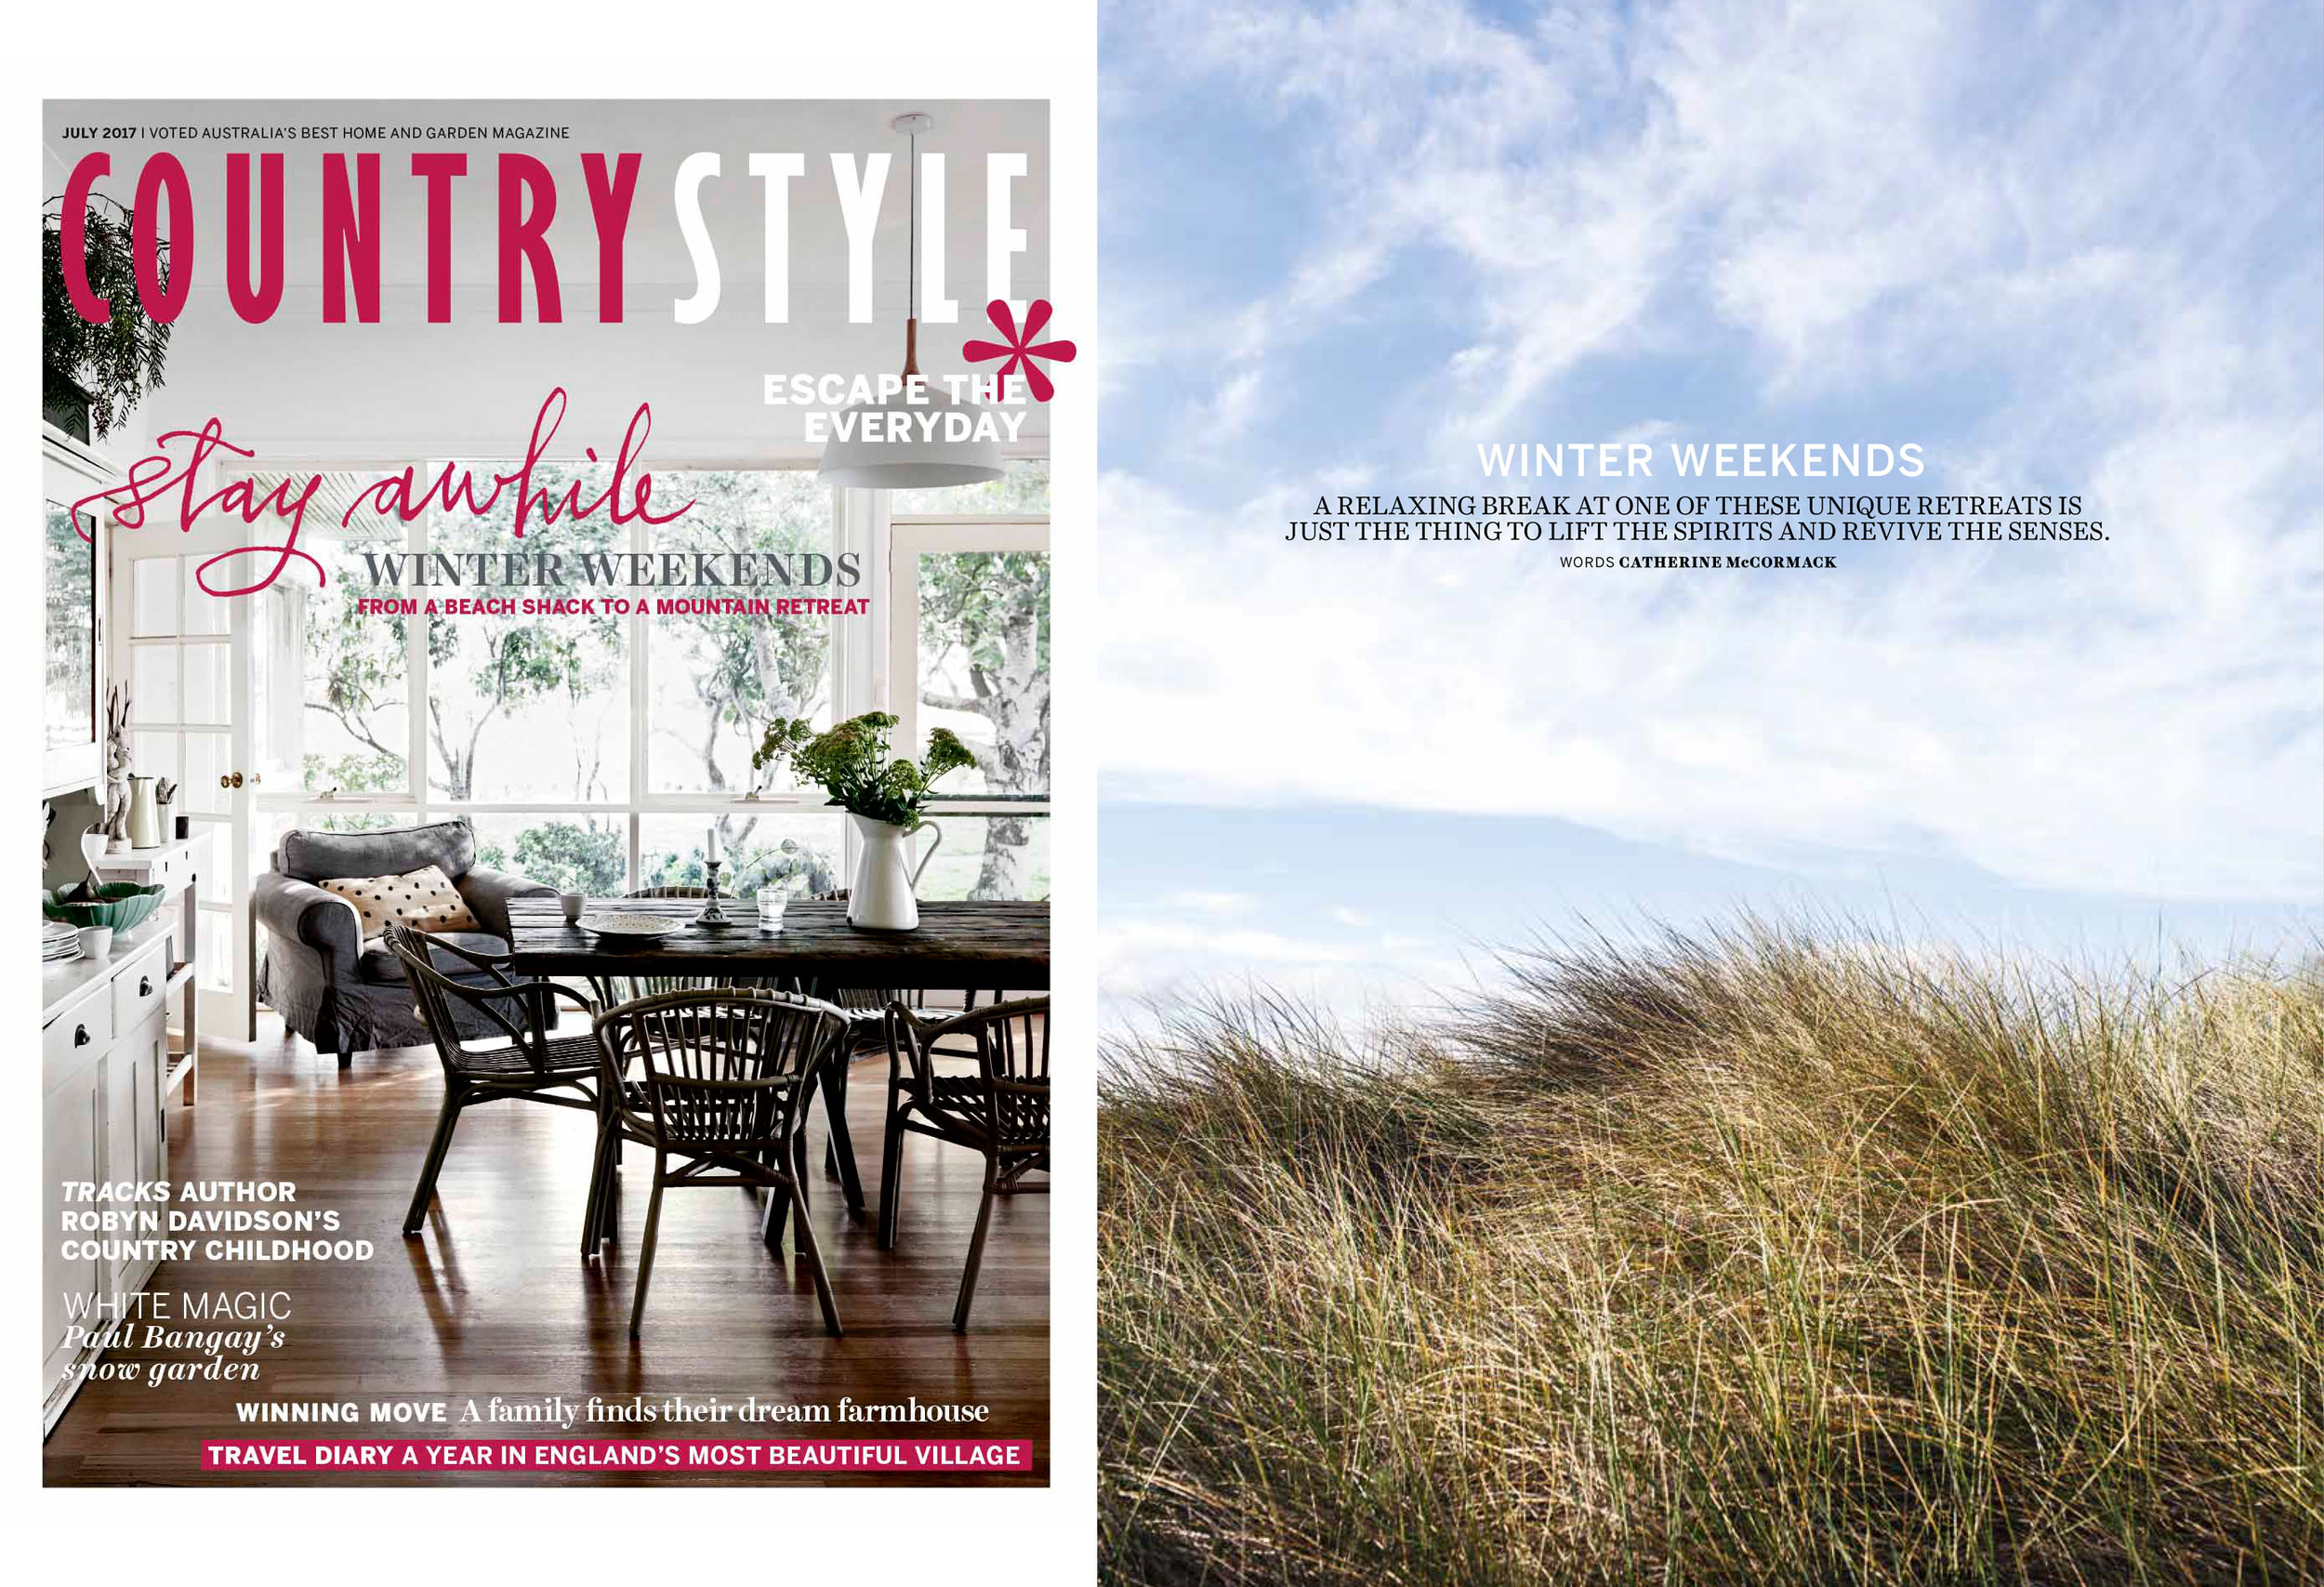 Accommodation_The_Eastern_Thredbo_Village_Country_Style_Magazine